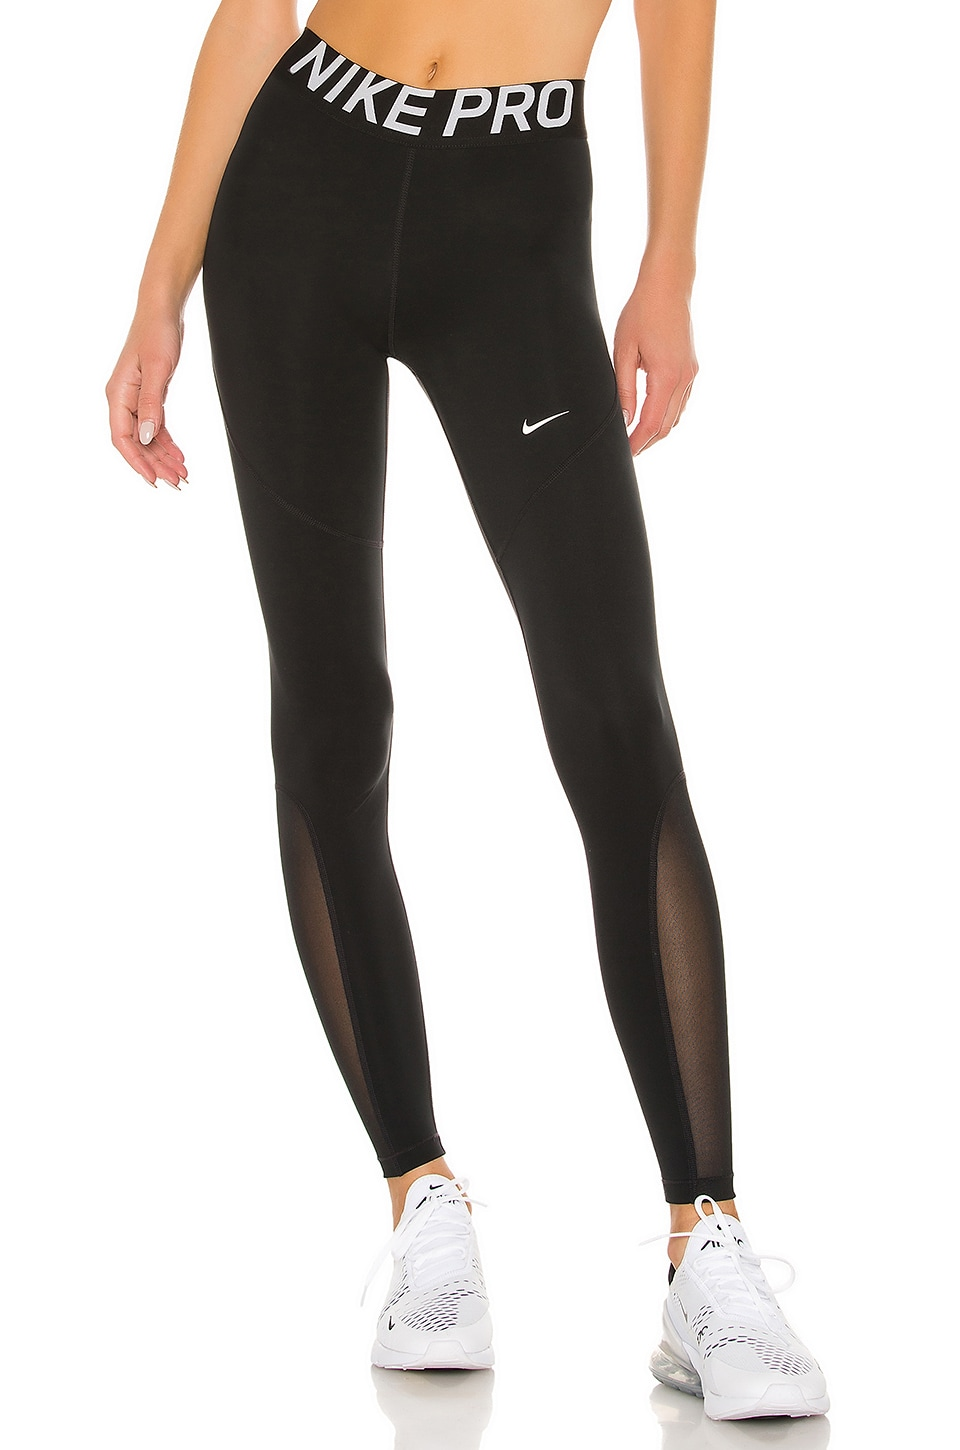 Nike Pro Tight in Black & White